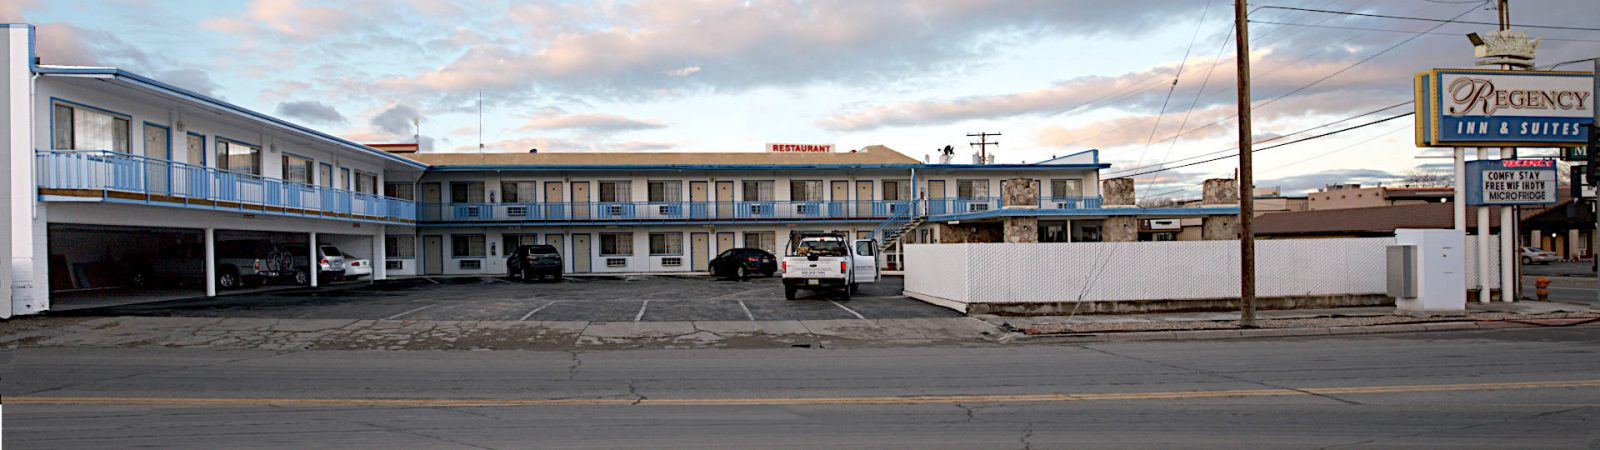 Regency Inn and Suites in Winnemucca